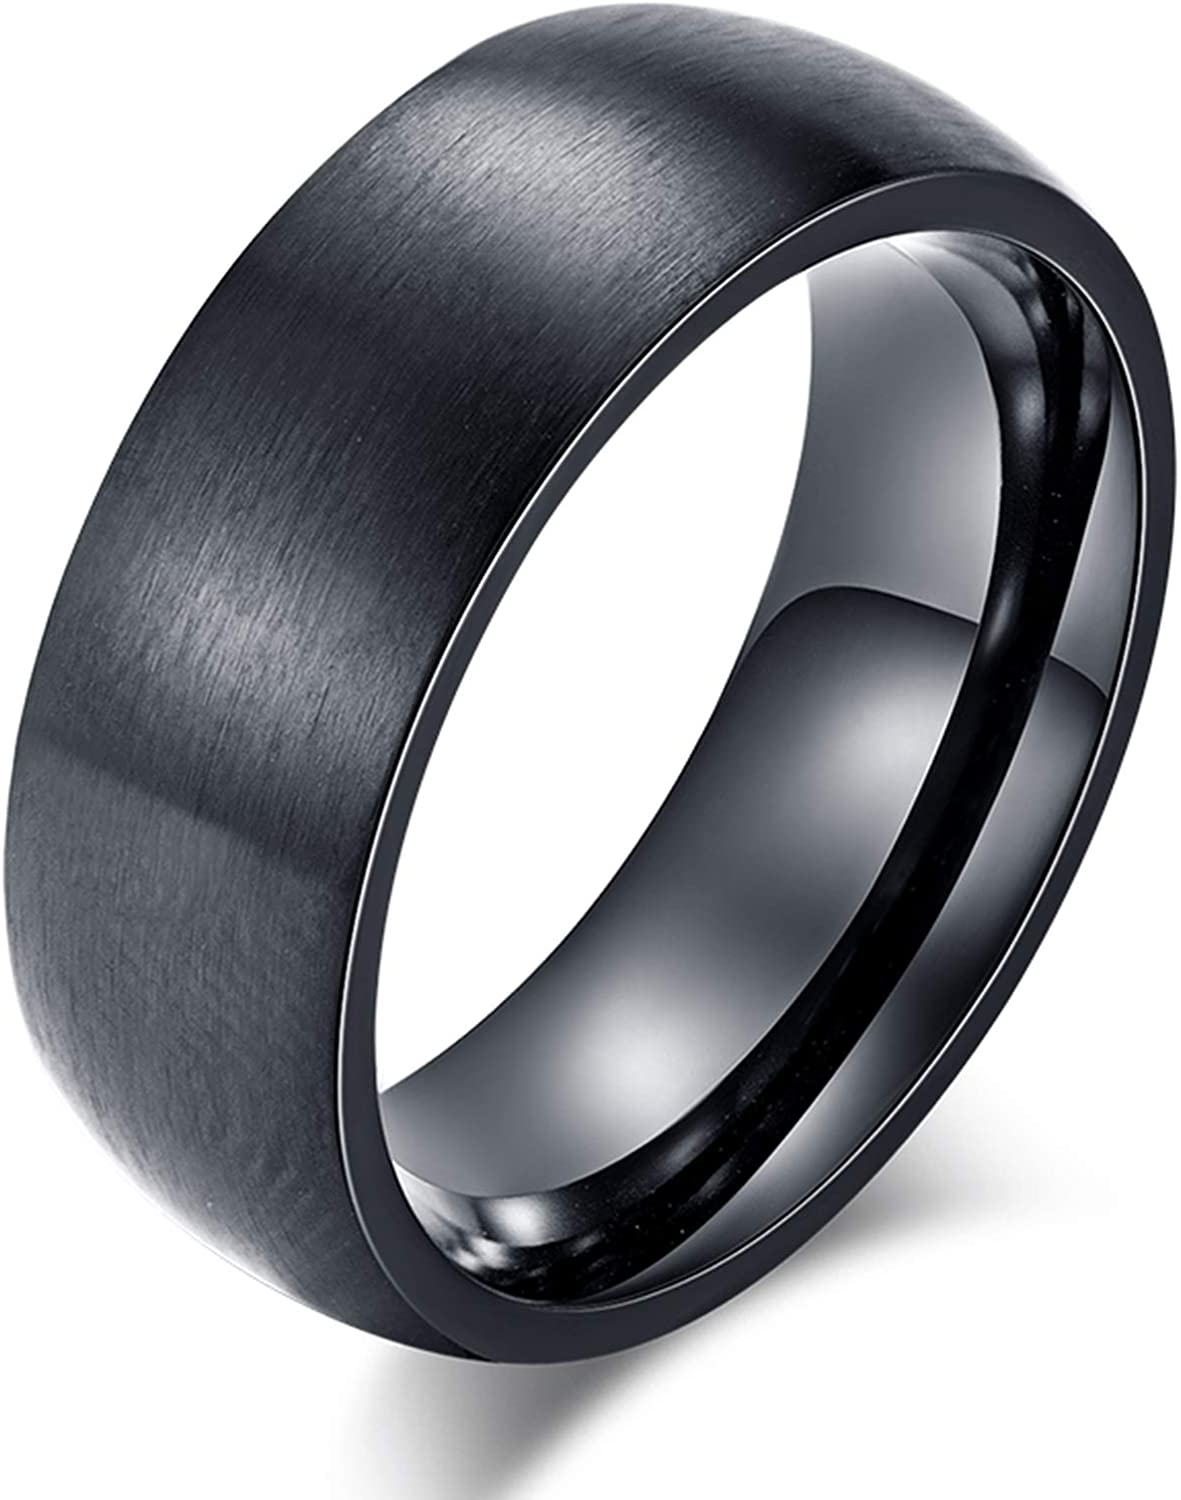 Comfort Fit LineAve Mens Stainless Steel Brushed Finish Ring 8mm Wedding Band